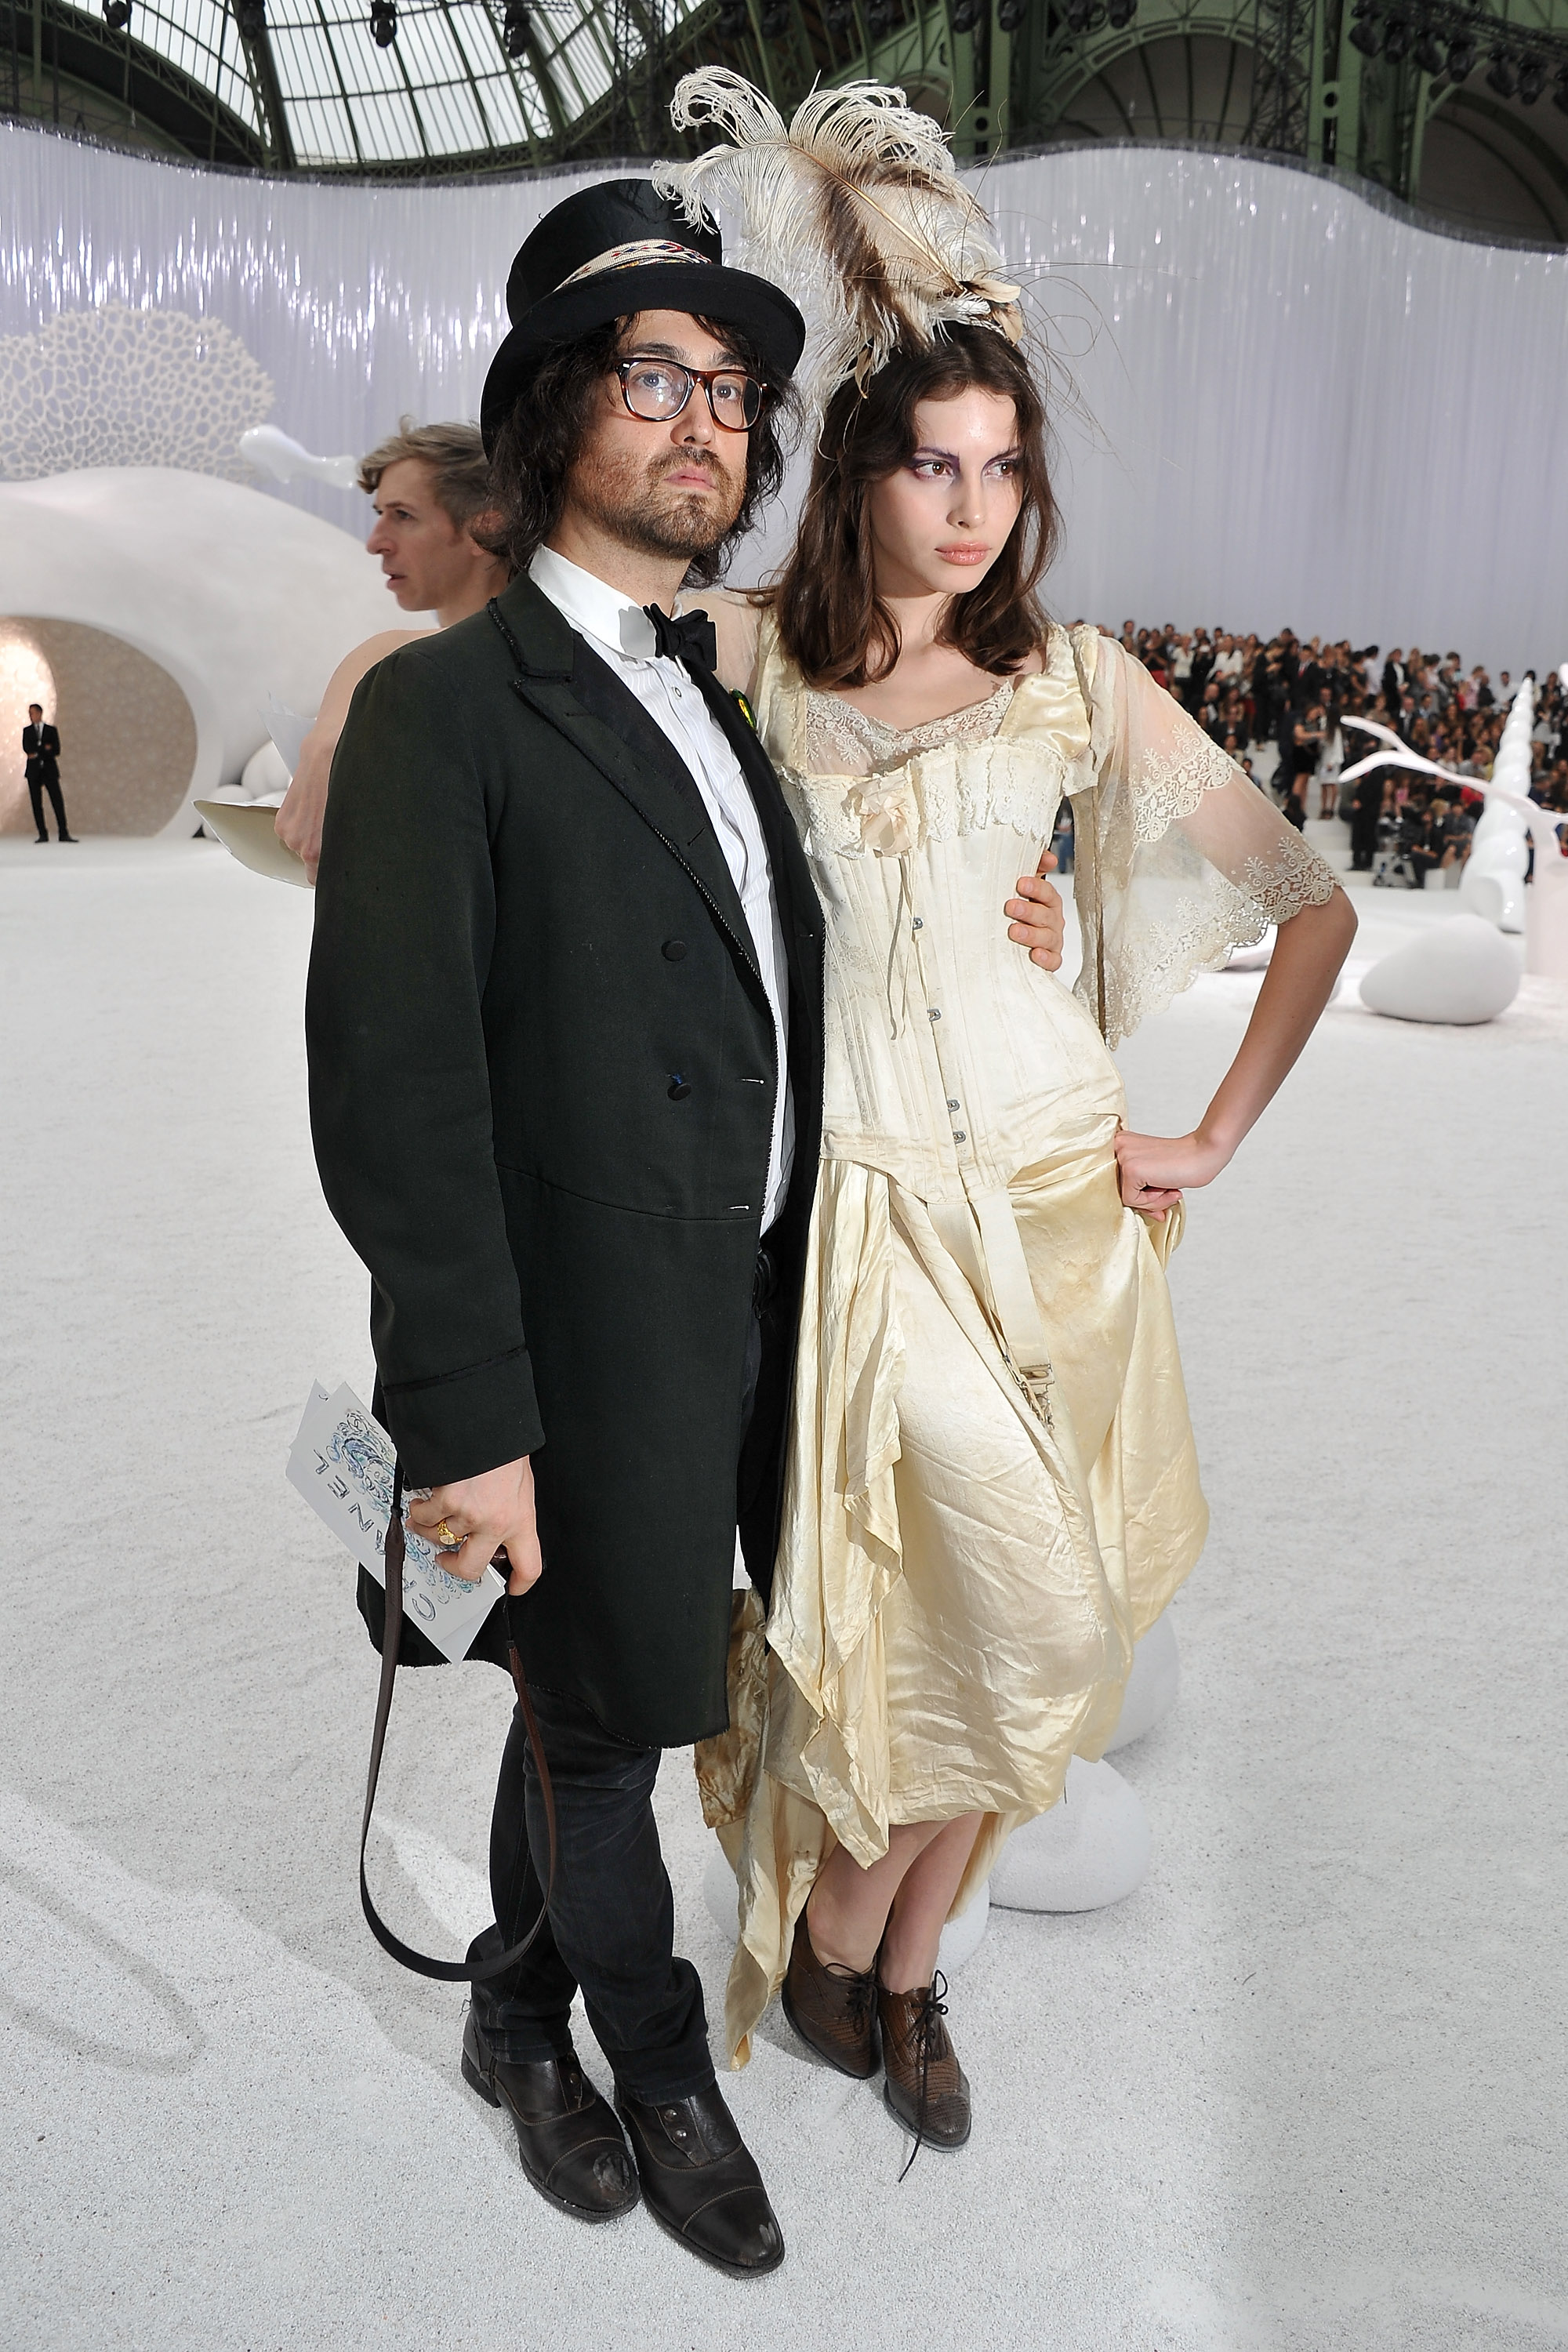 Sean Lennon at Paris Fashion Week.